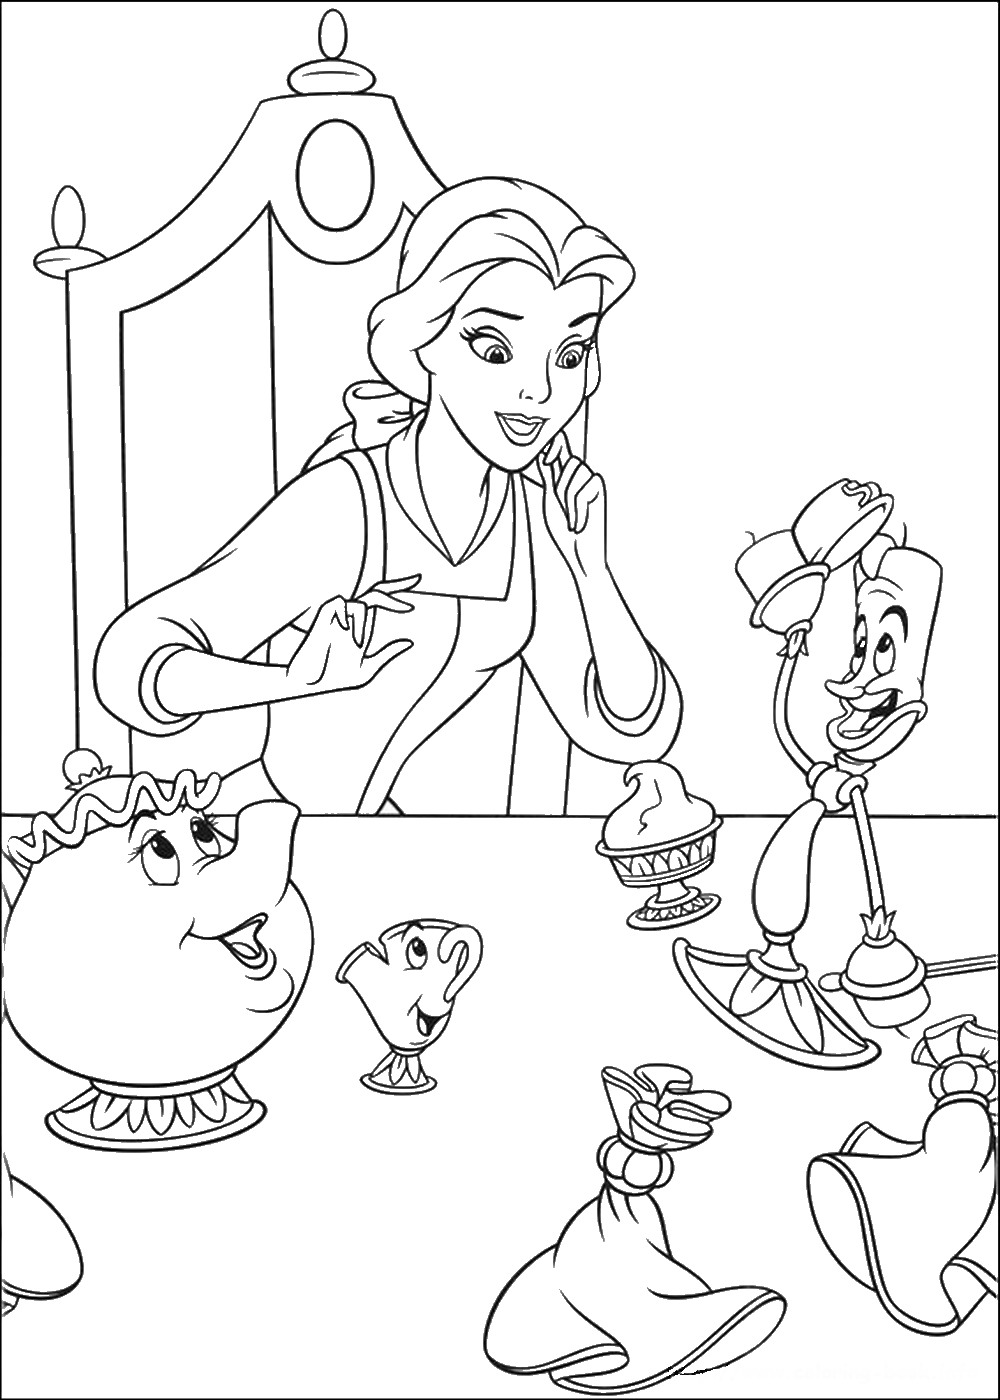 coloring pages beauty and the beast beauty and the beast coloring pages the pages beauty beast and coloring